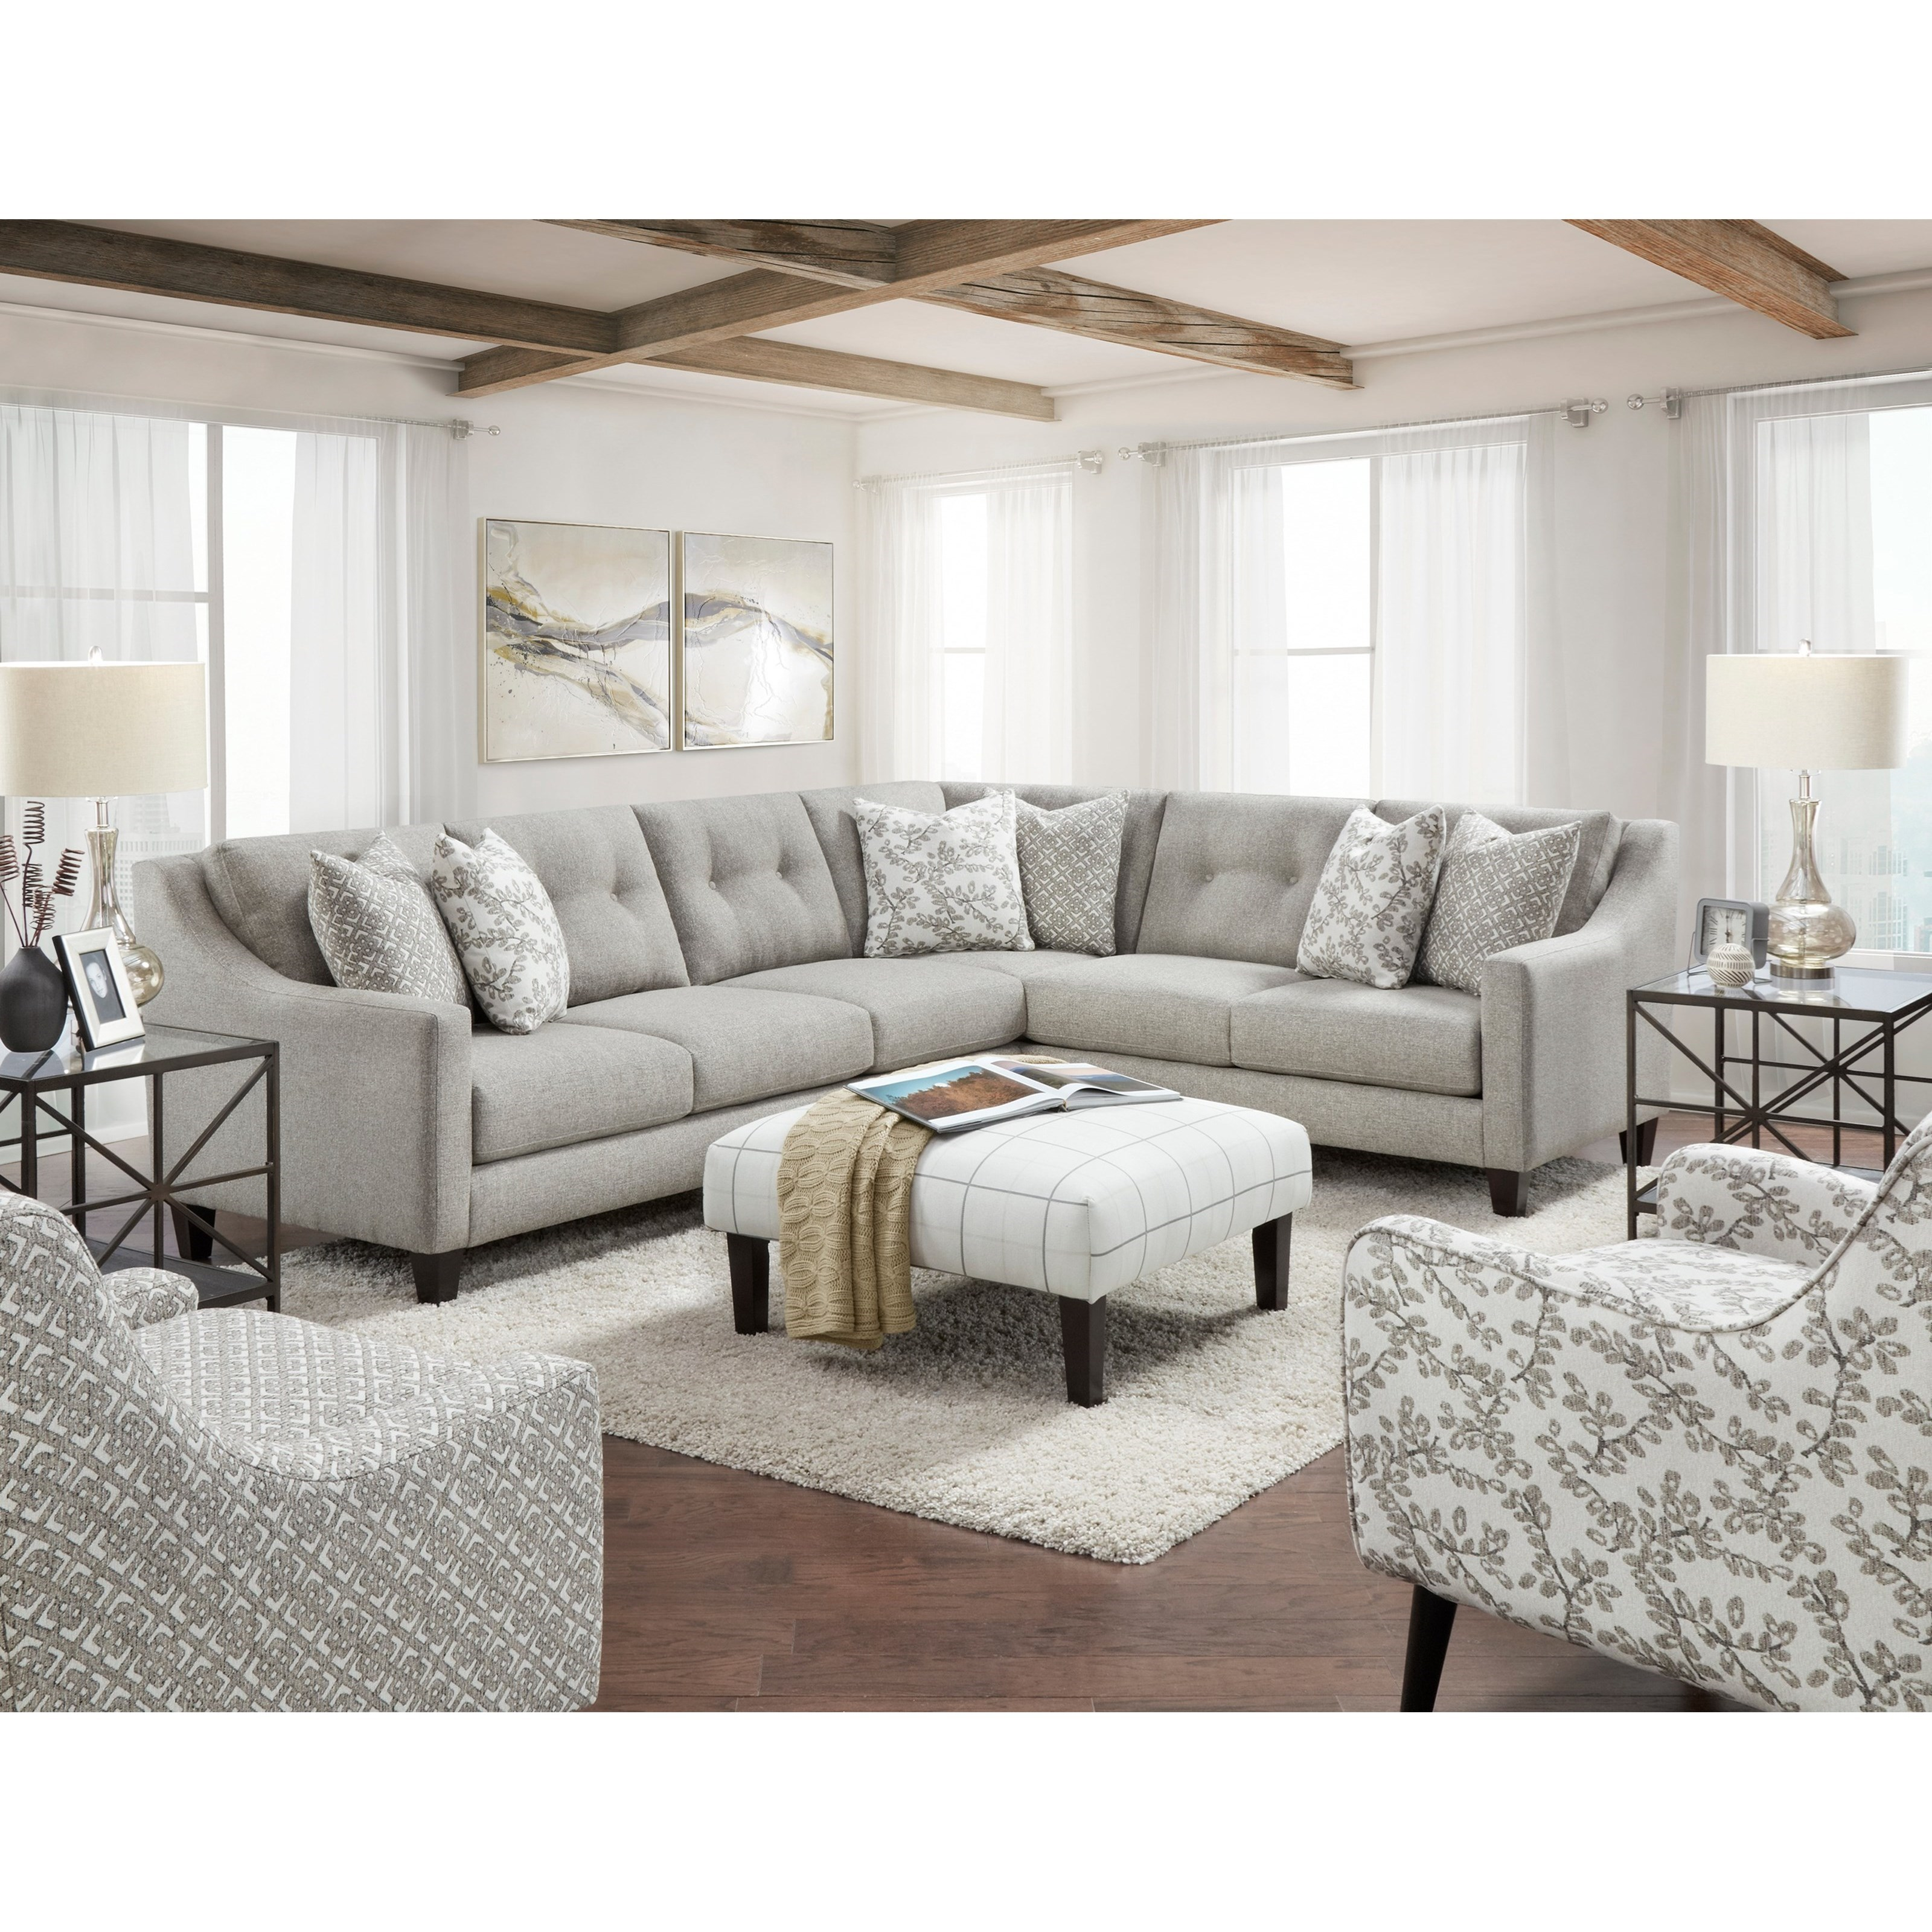 3280 Living Room Group by Powell's V.I.P. at Powell's Furniture and Mattress